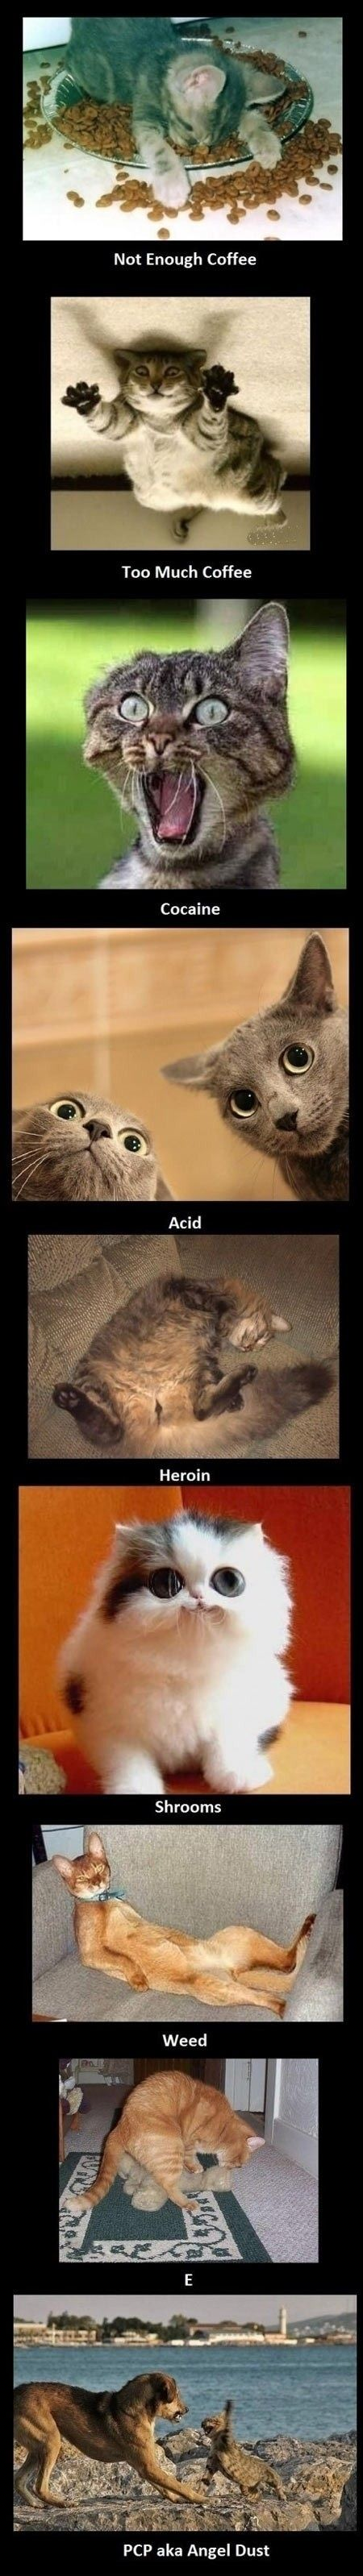 Cats on drugs // funny pictures - funny photos - funny images - funny pics - funny quotes - #lol #humor #funnypictures